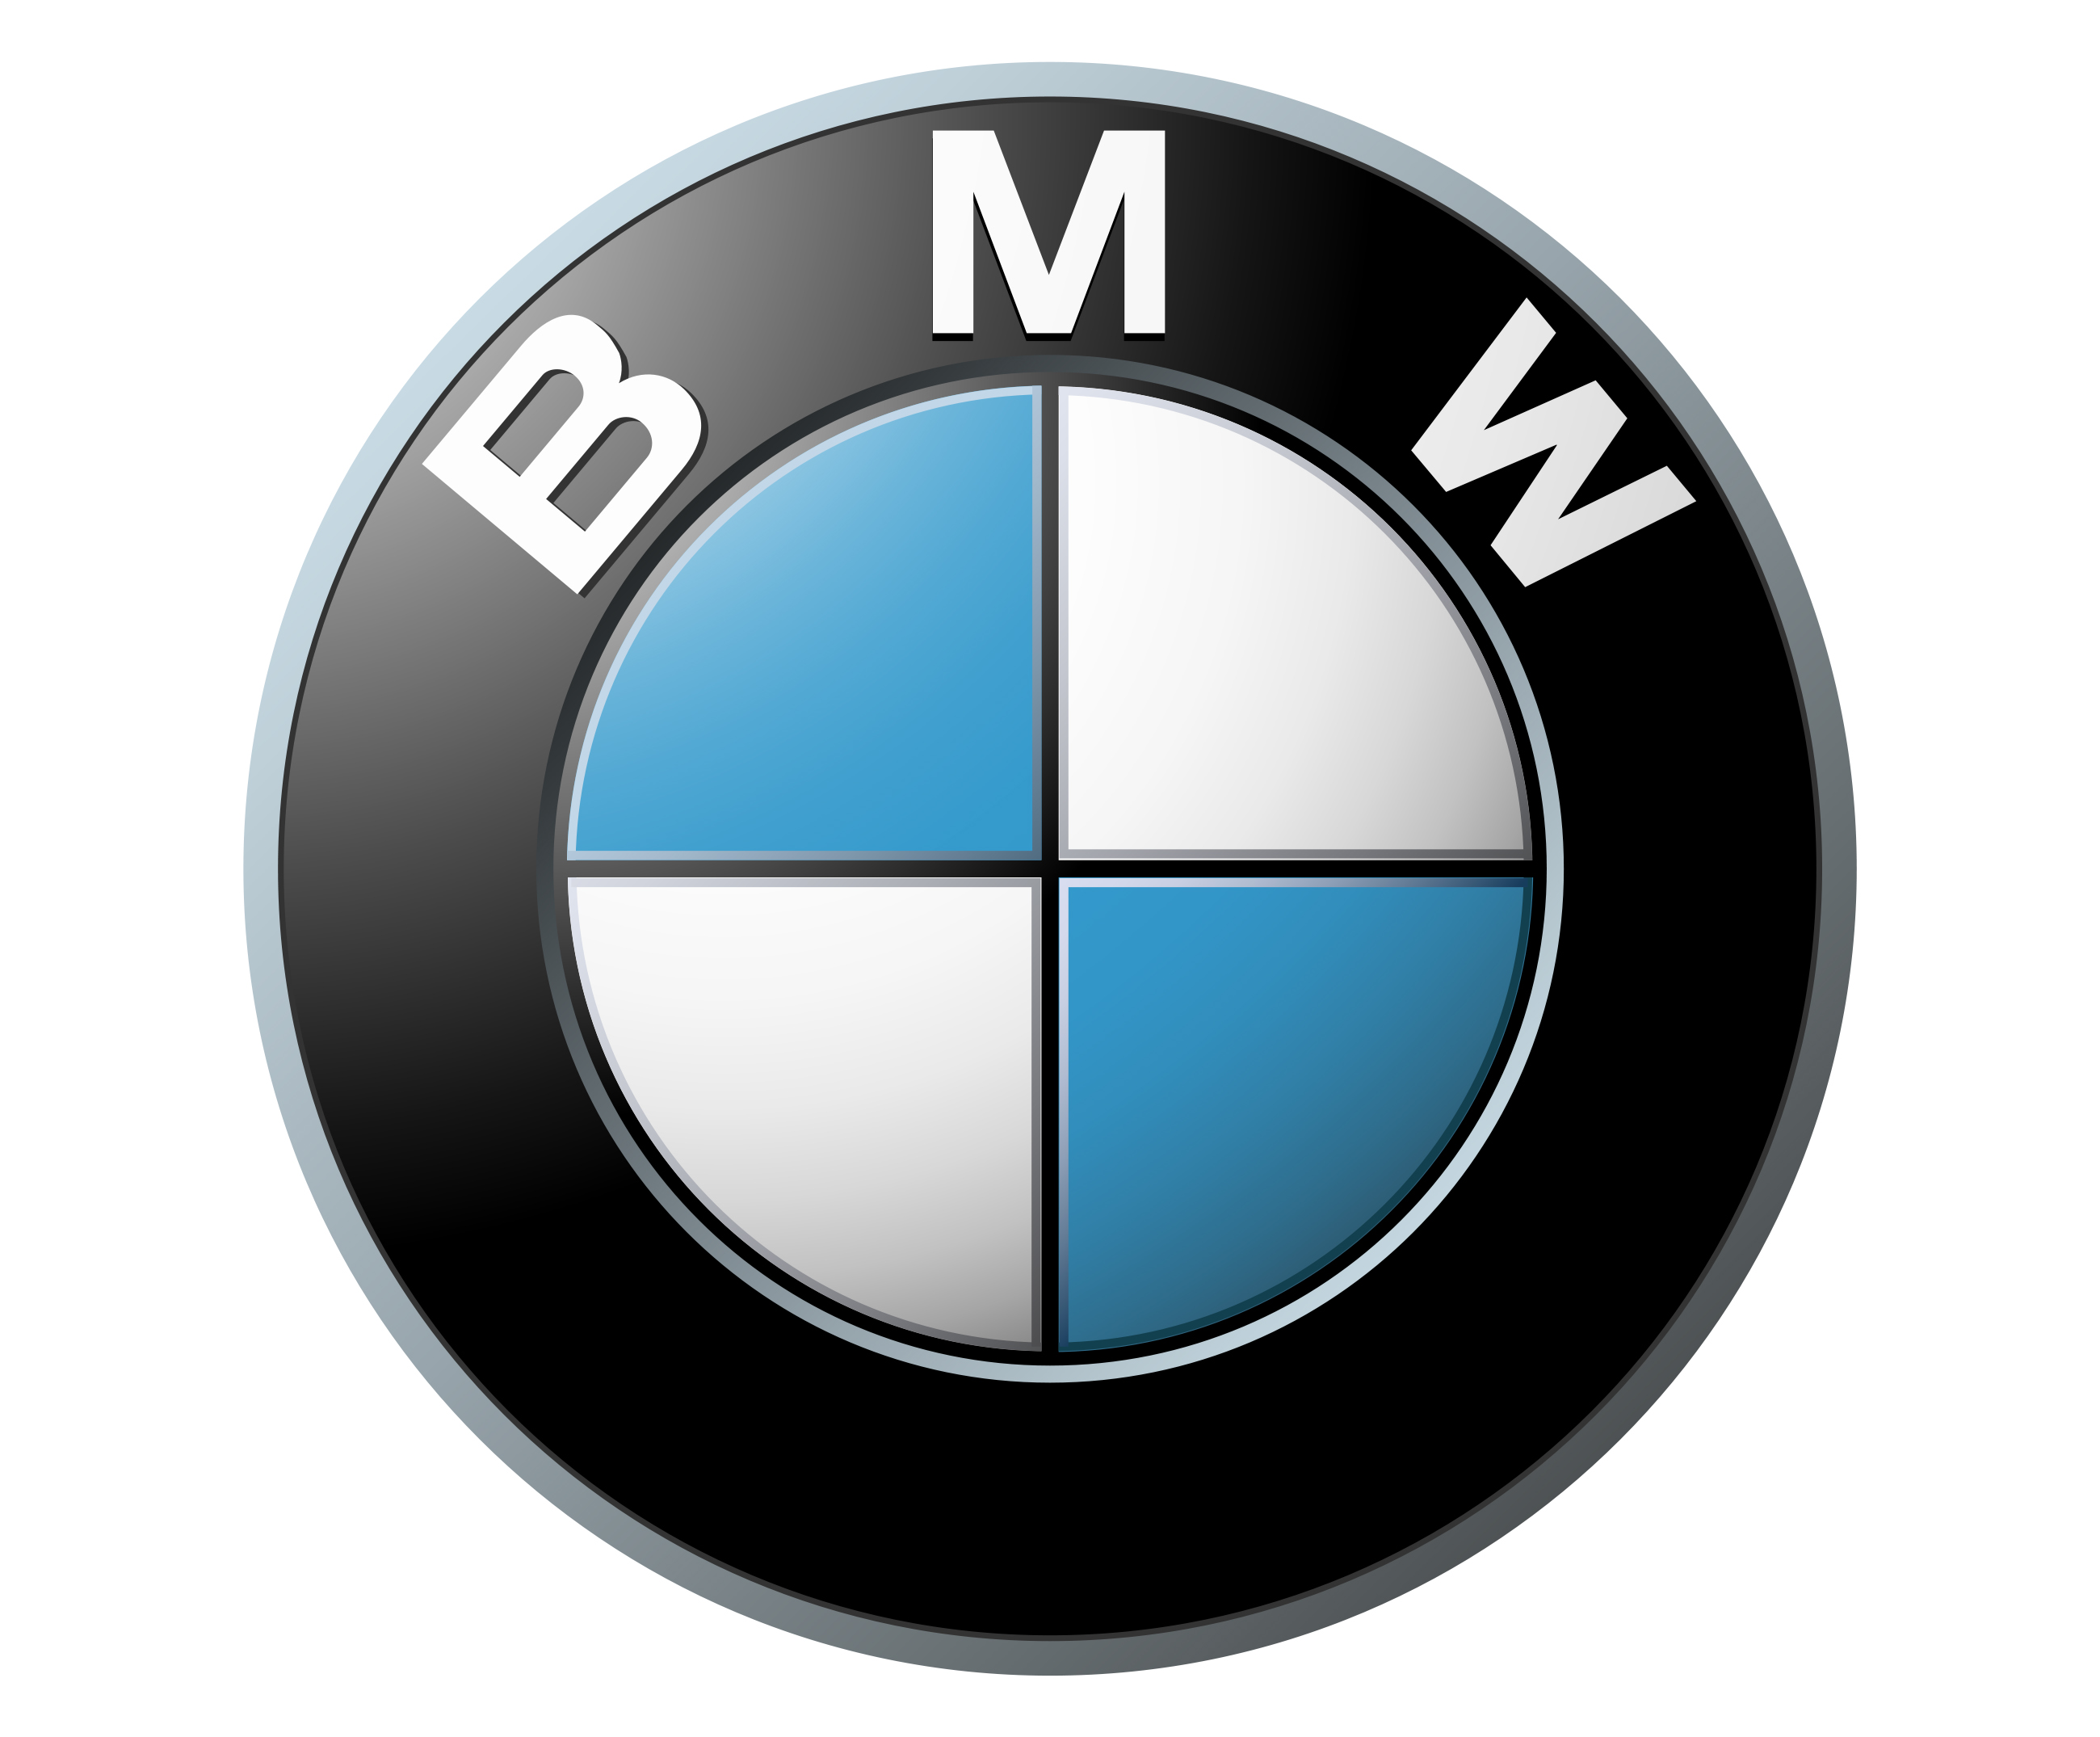 European Car Brands World Cars Brands